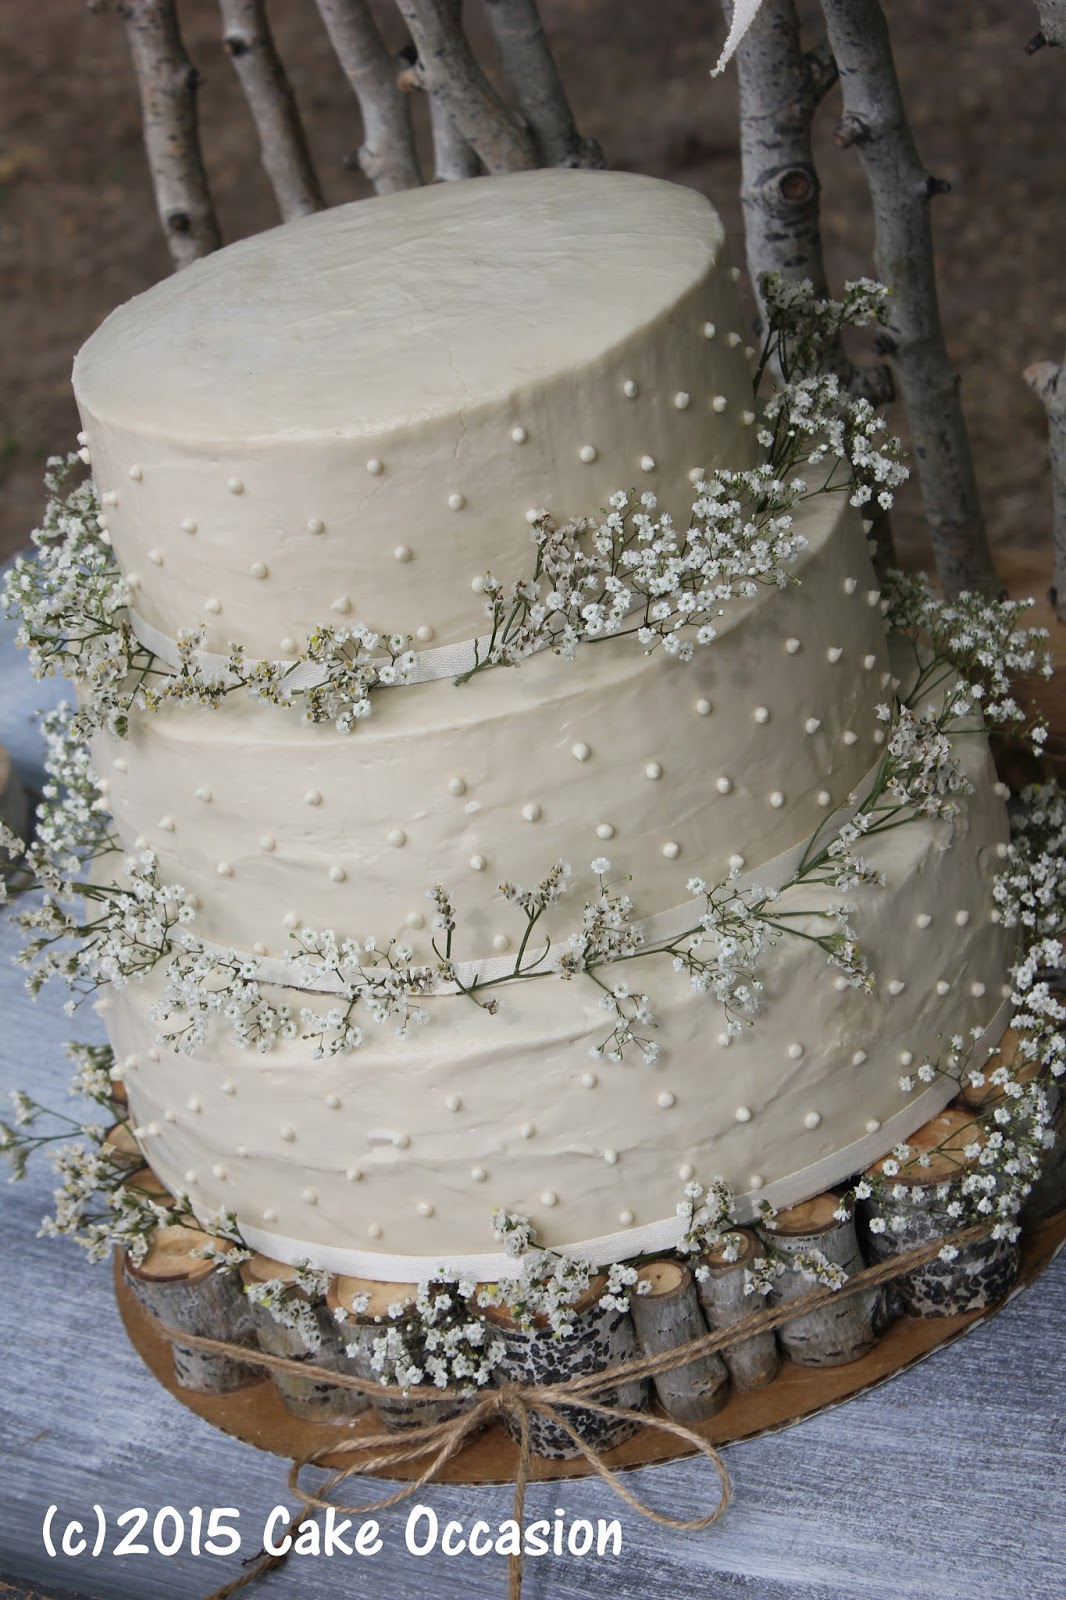 The Above Cake Was For An Outdoor Wedding On An Afternoon In Early May We Didn T Expect It To Be Terribly Hot So The Bride Chose Cream Cheese Icing